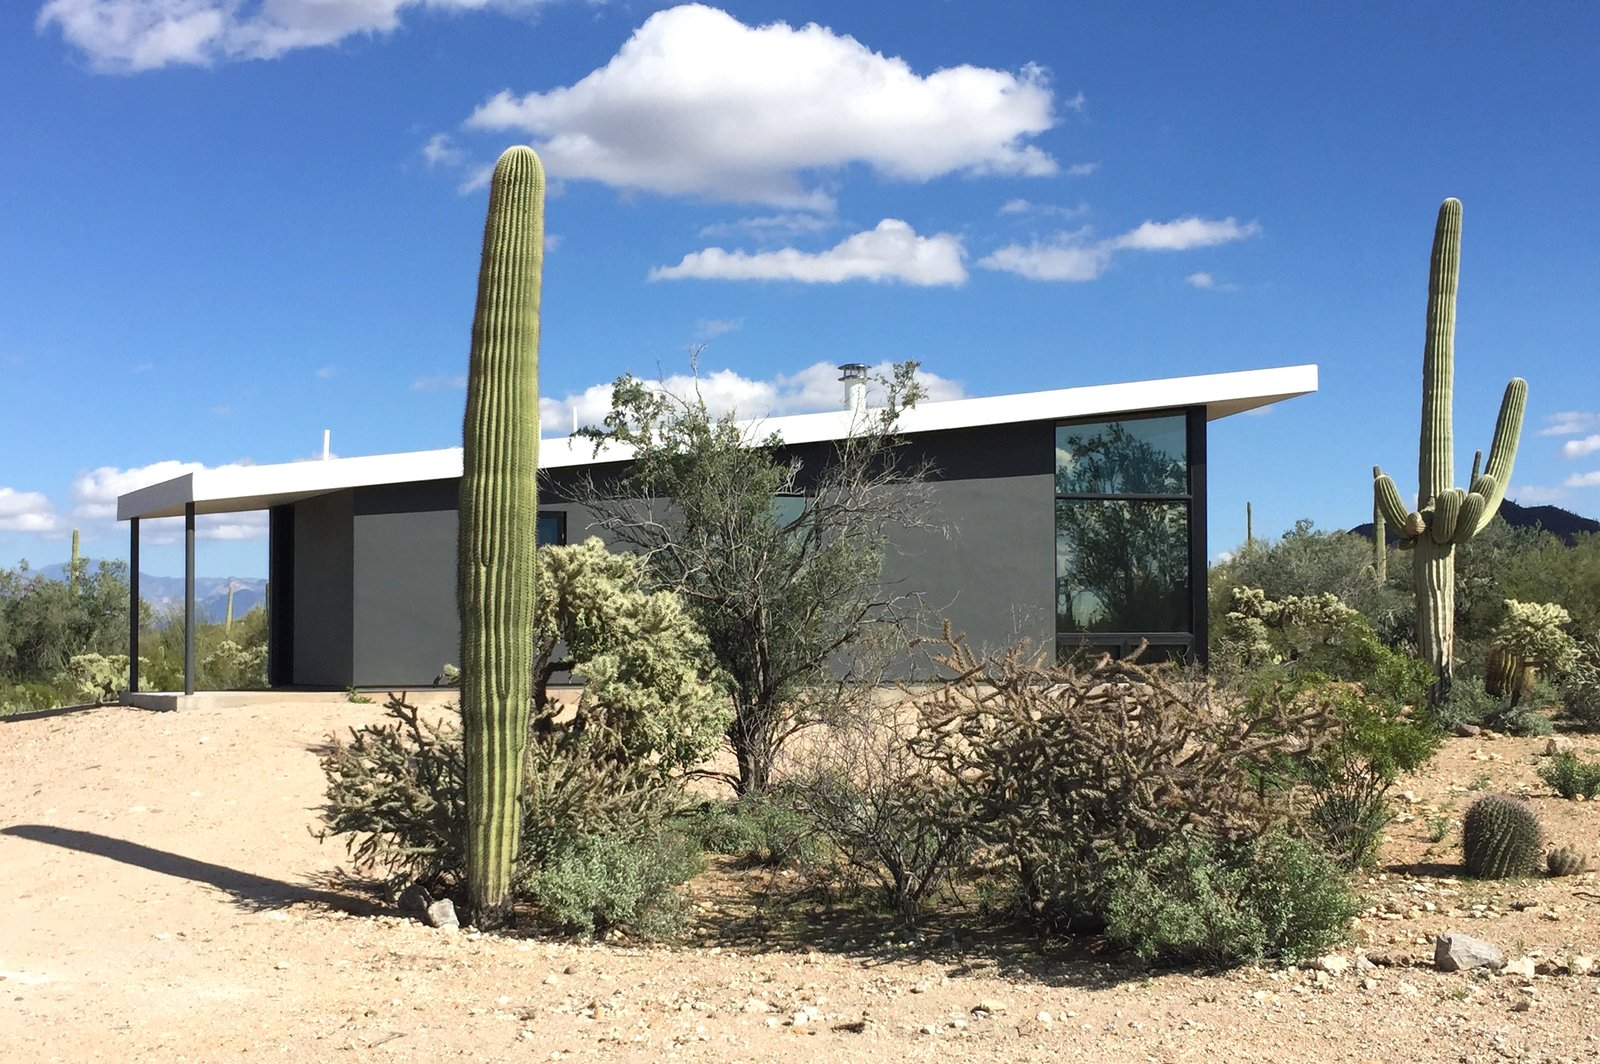 Exterior, Wood Siding Material, Mid-Century Building Type, and House Building Type  Tucson Retirement Oasis